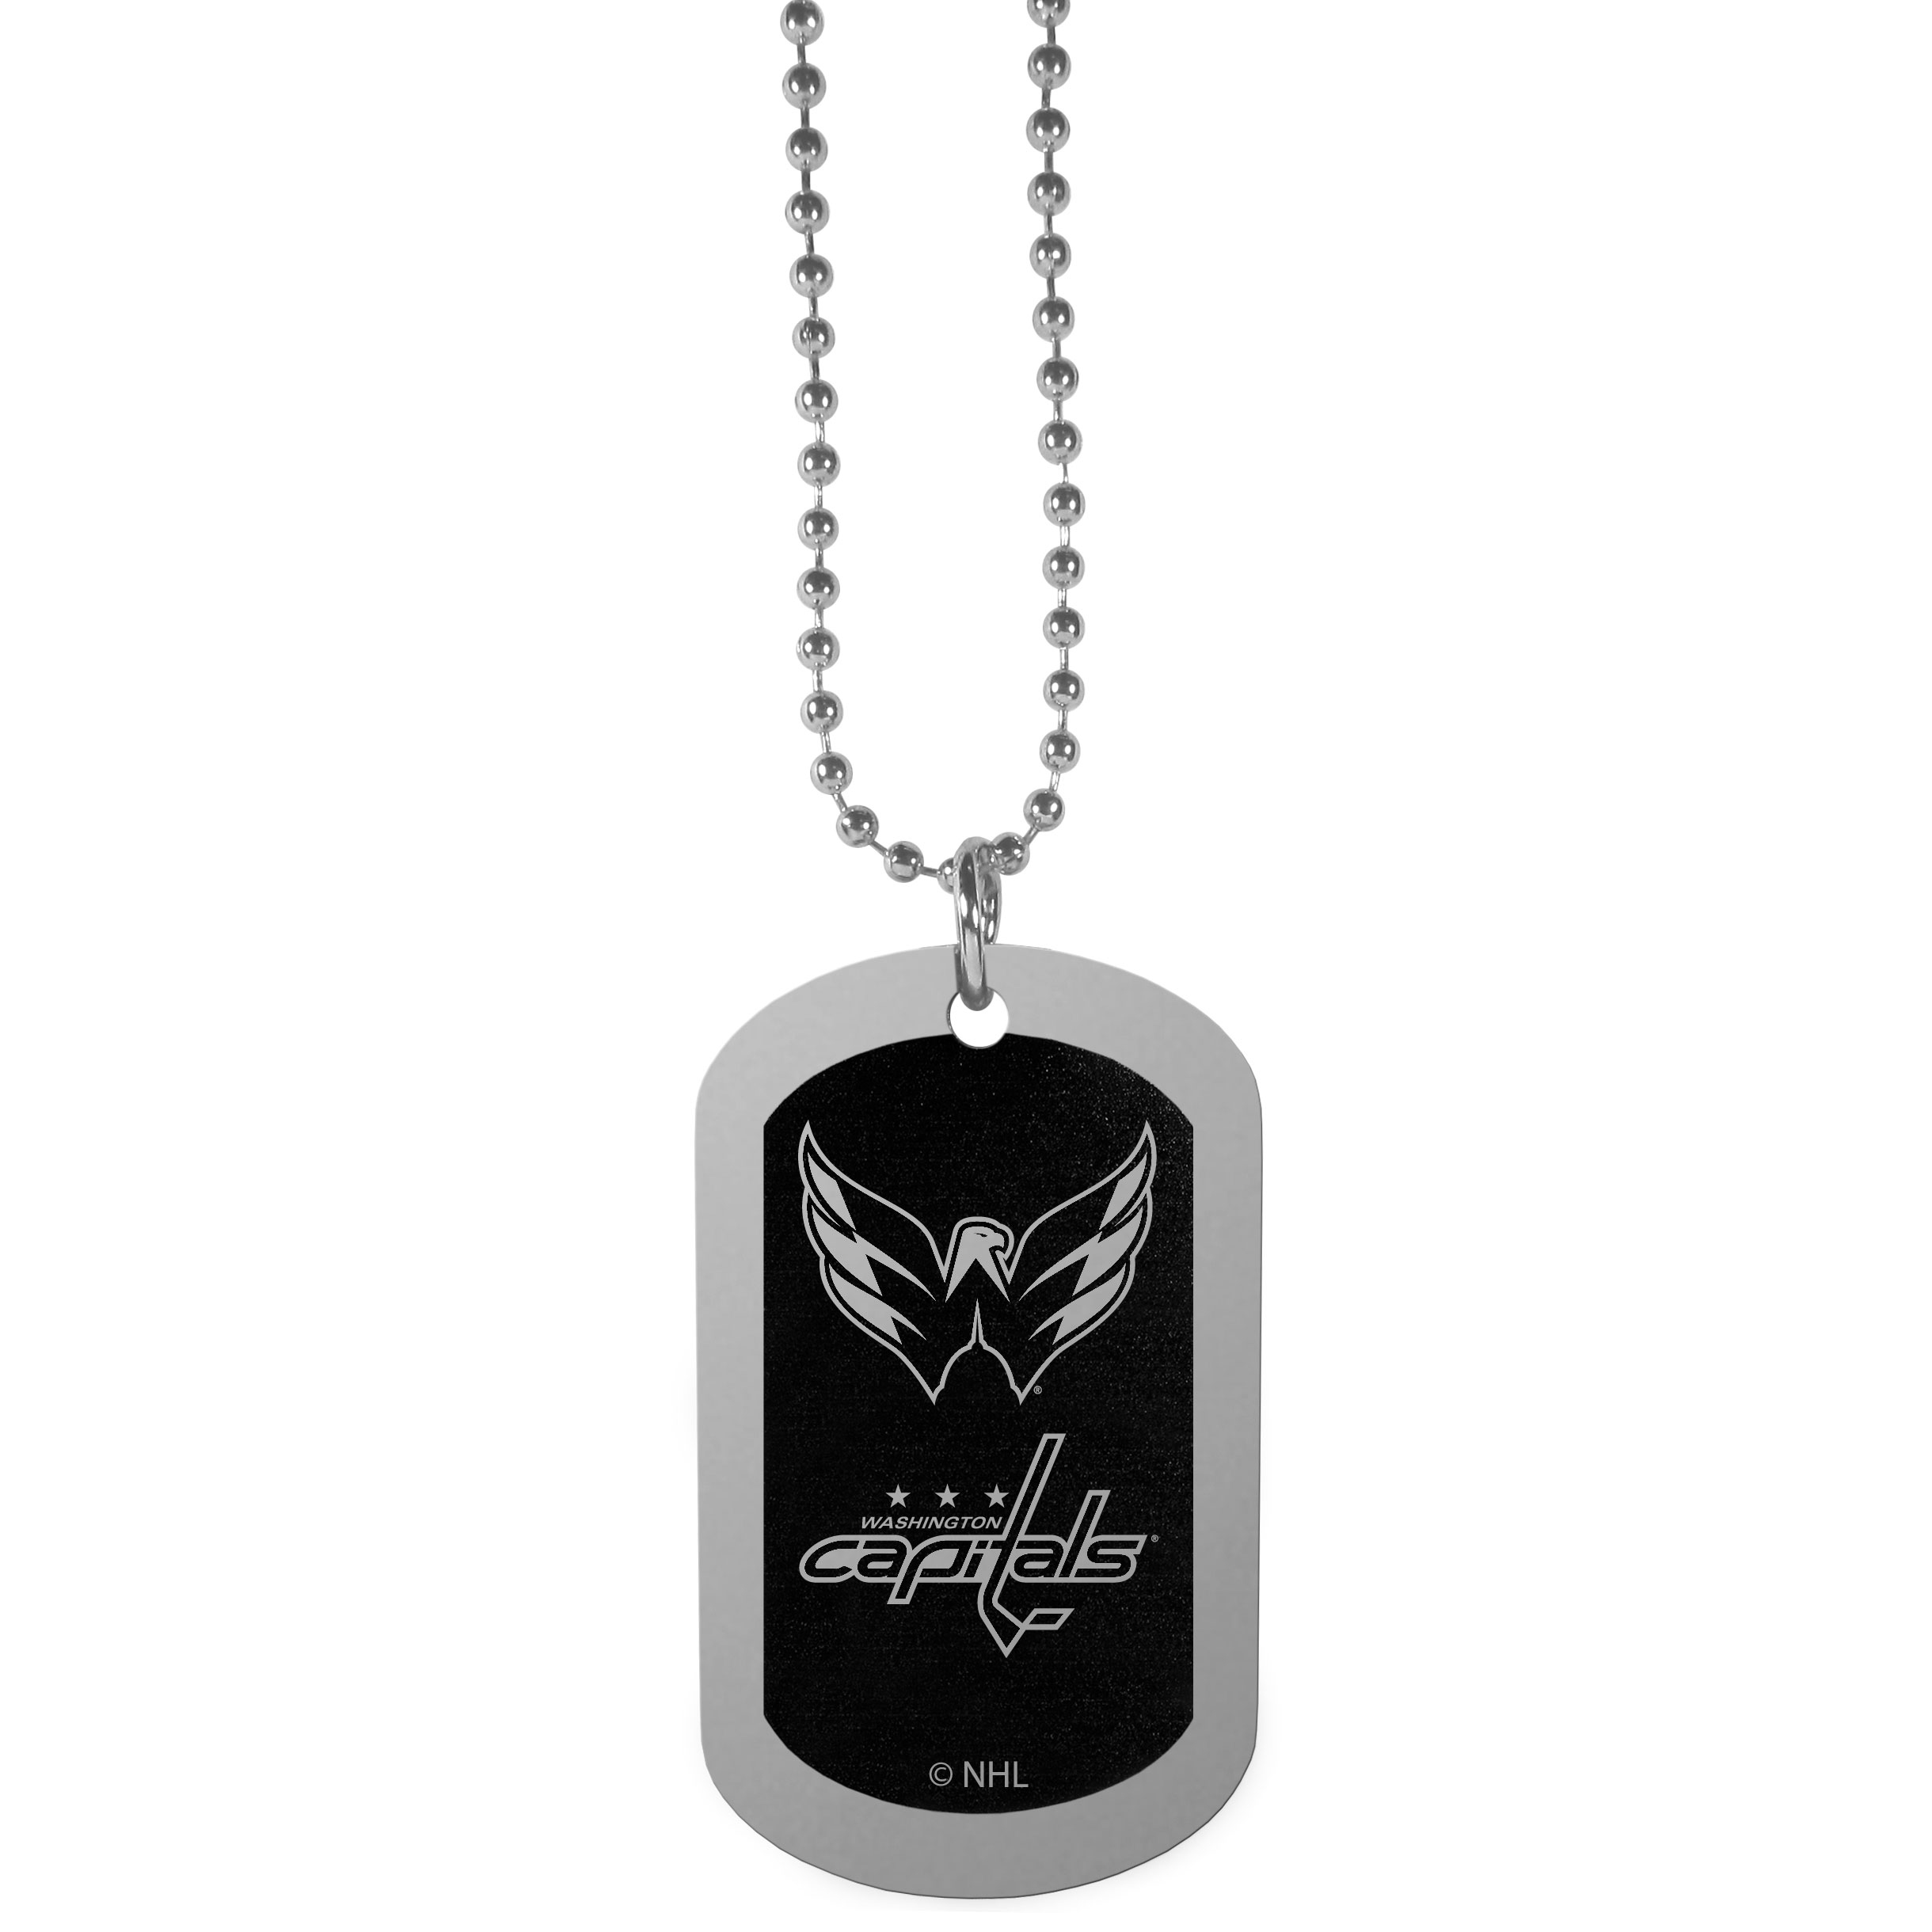 Washington Capitals® Chrome Tag Necklace - Dog tag necklaces are a fashion statement that is here to stay. The sporty version of the classic tag features a black printed over a high polish tag to create a bold and sporty look. The tag comes on a 26 inch ball chain with a ball and joint clasp. Any Washington Capitals® would be proud to wear this attractive fashion accessory.